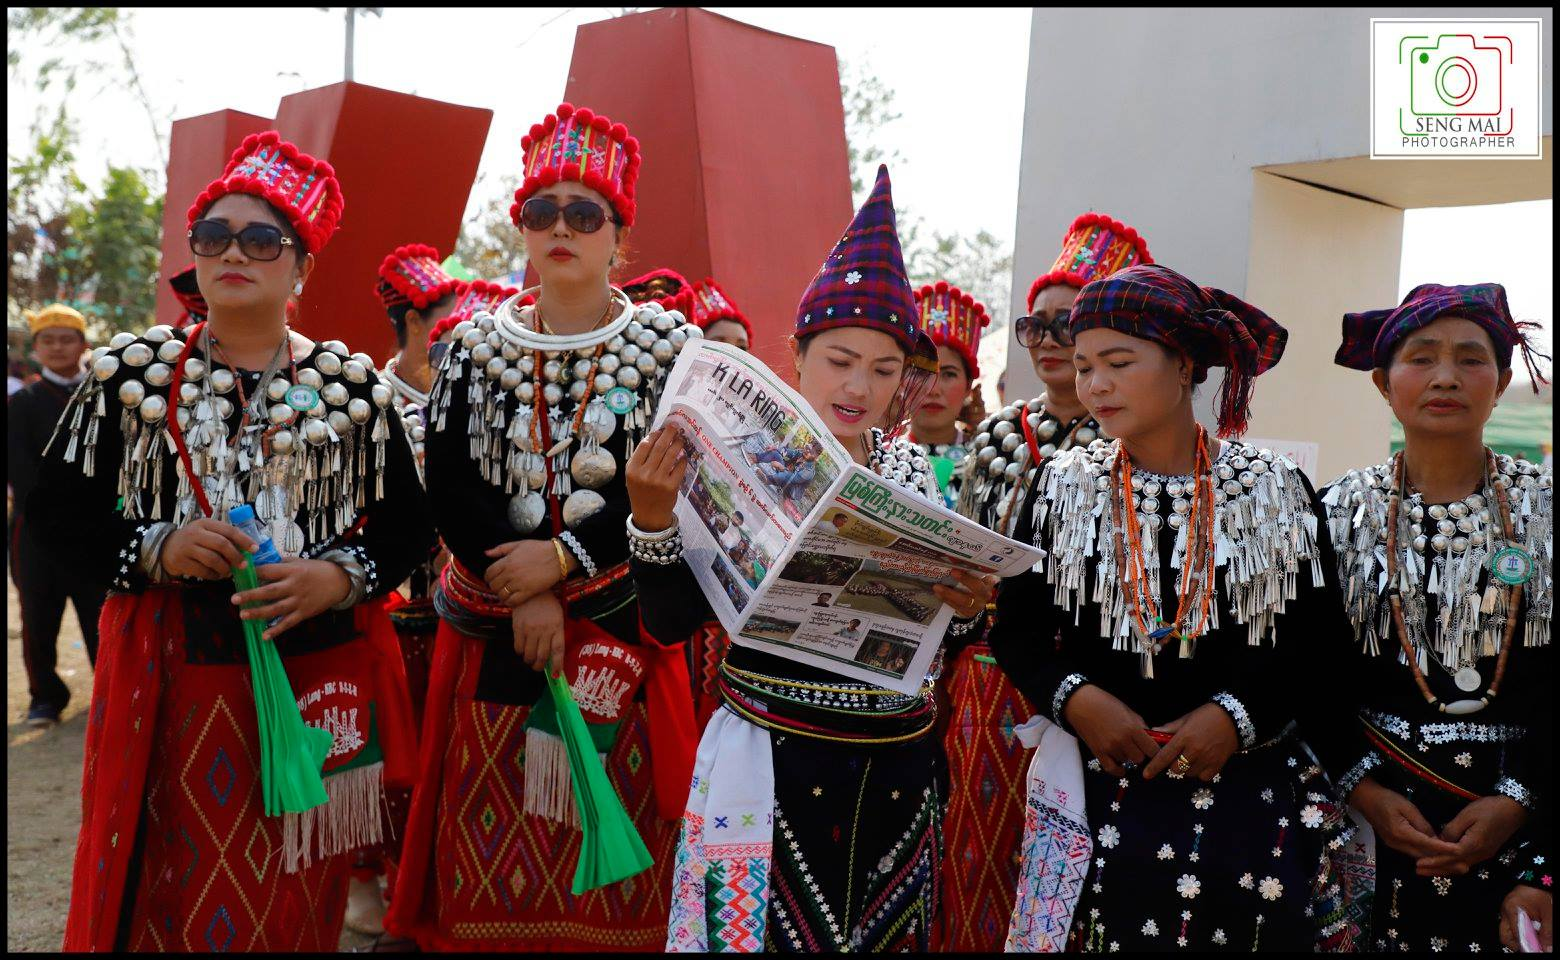 Myitkyina News Journal is harnessing the power of local journalism in a country that until just a few years ago had no independent media